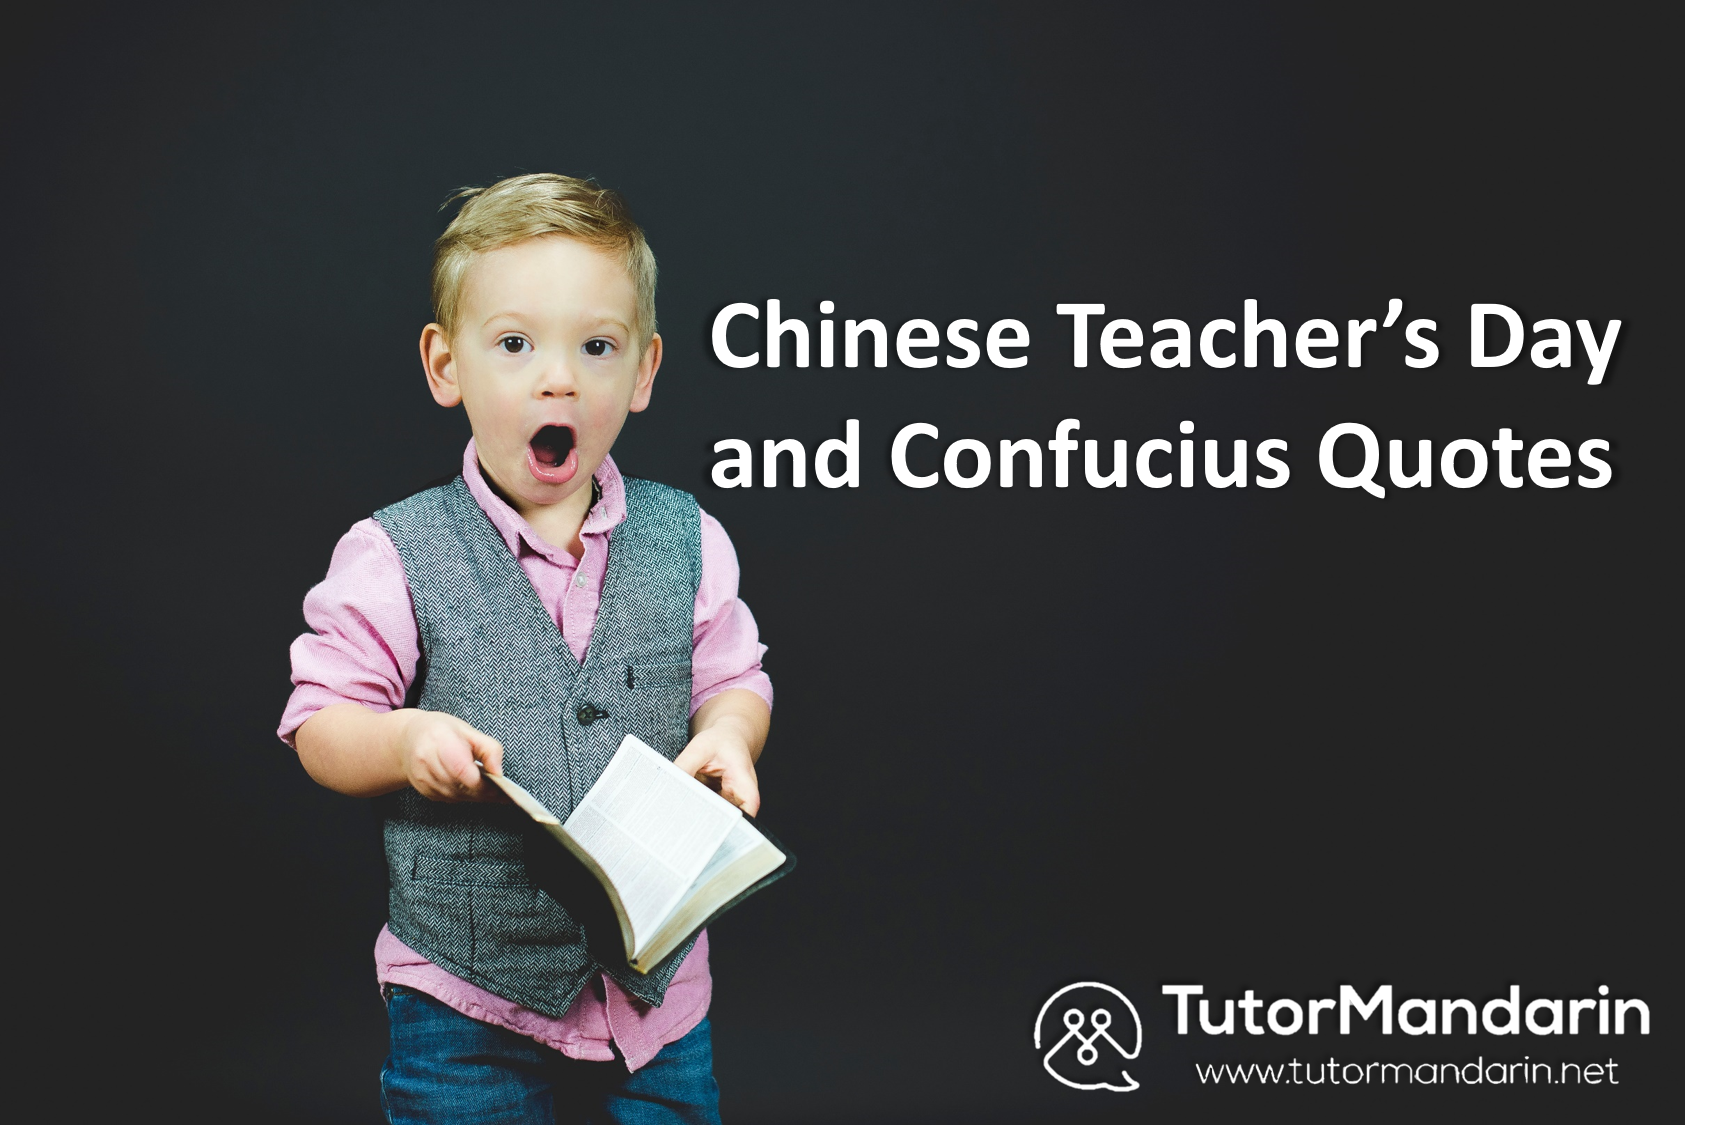 Chinese Teacher's Day and Confucius Quotes - Introduction of